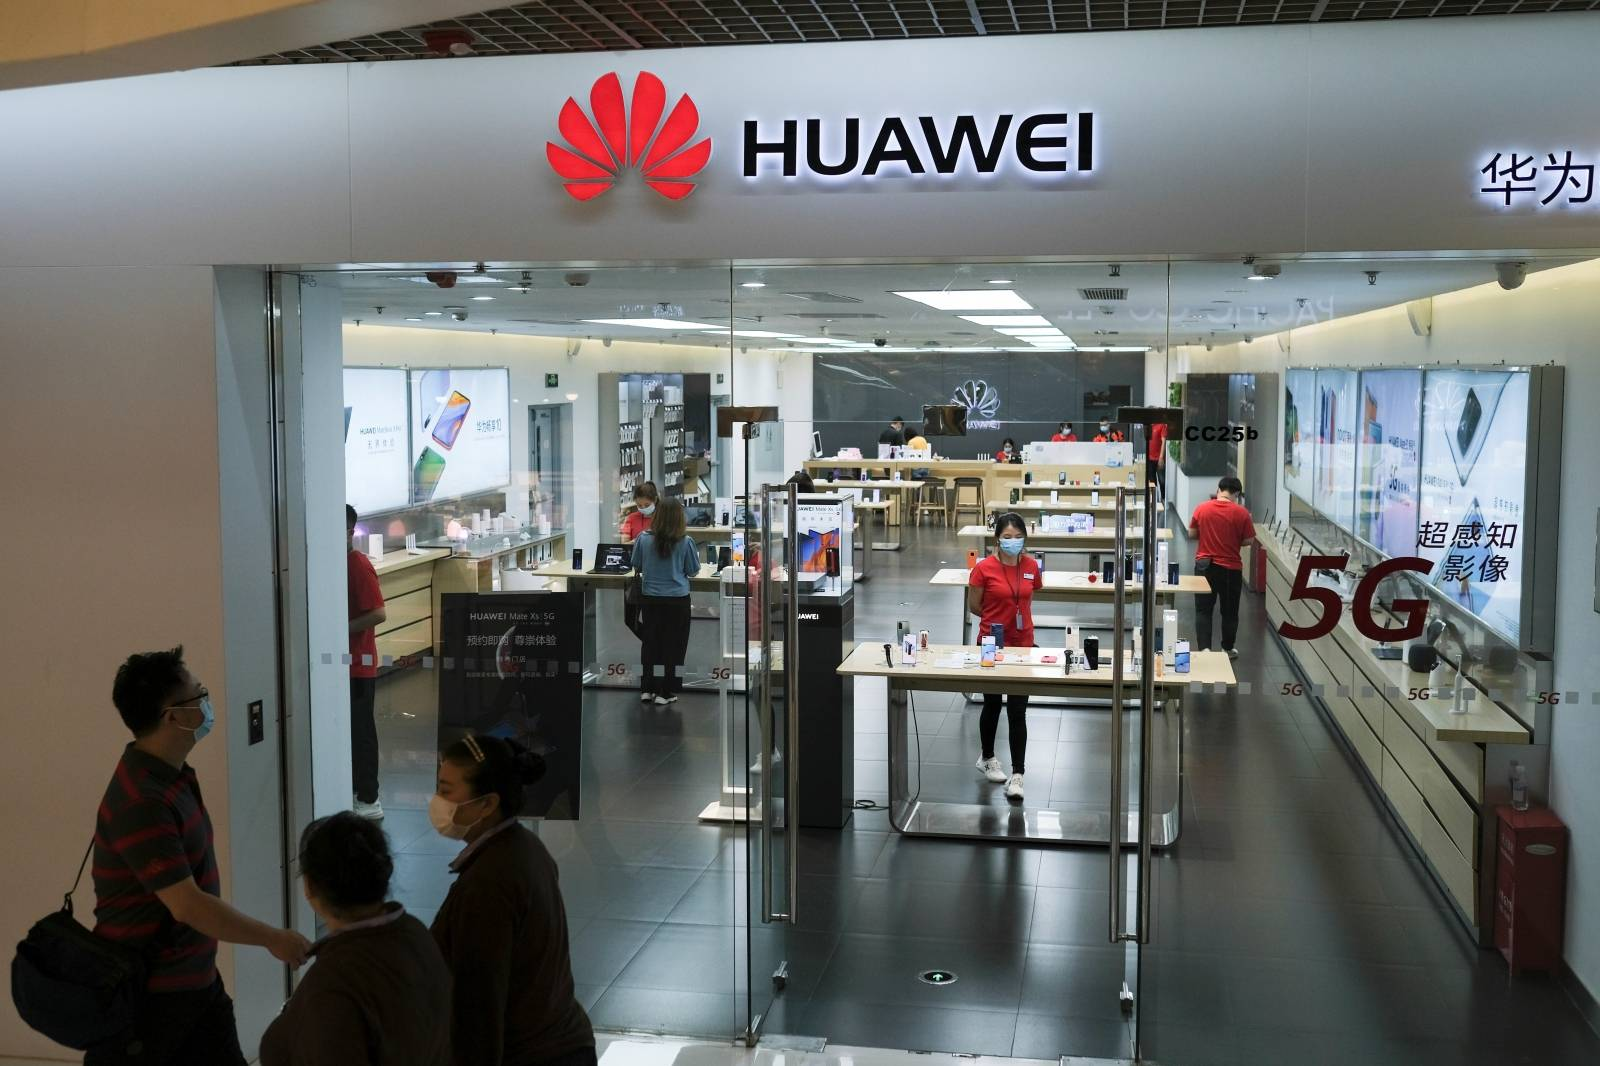 People wearing face masks walk past a?Huawei?store at a shopping mall, following an outbreak of the coronavirus disease (COVID-19), in Beijing